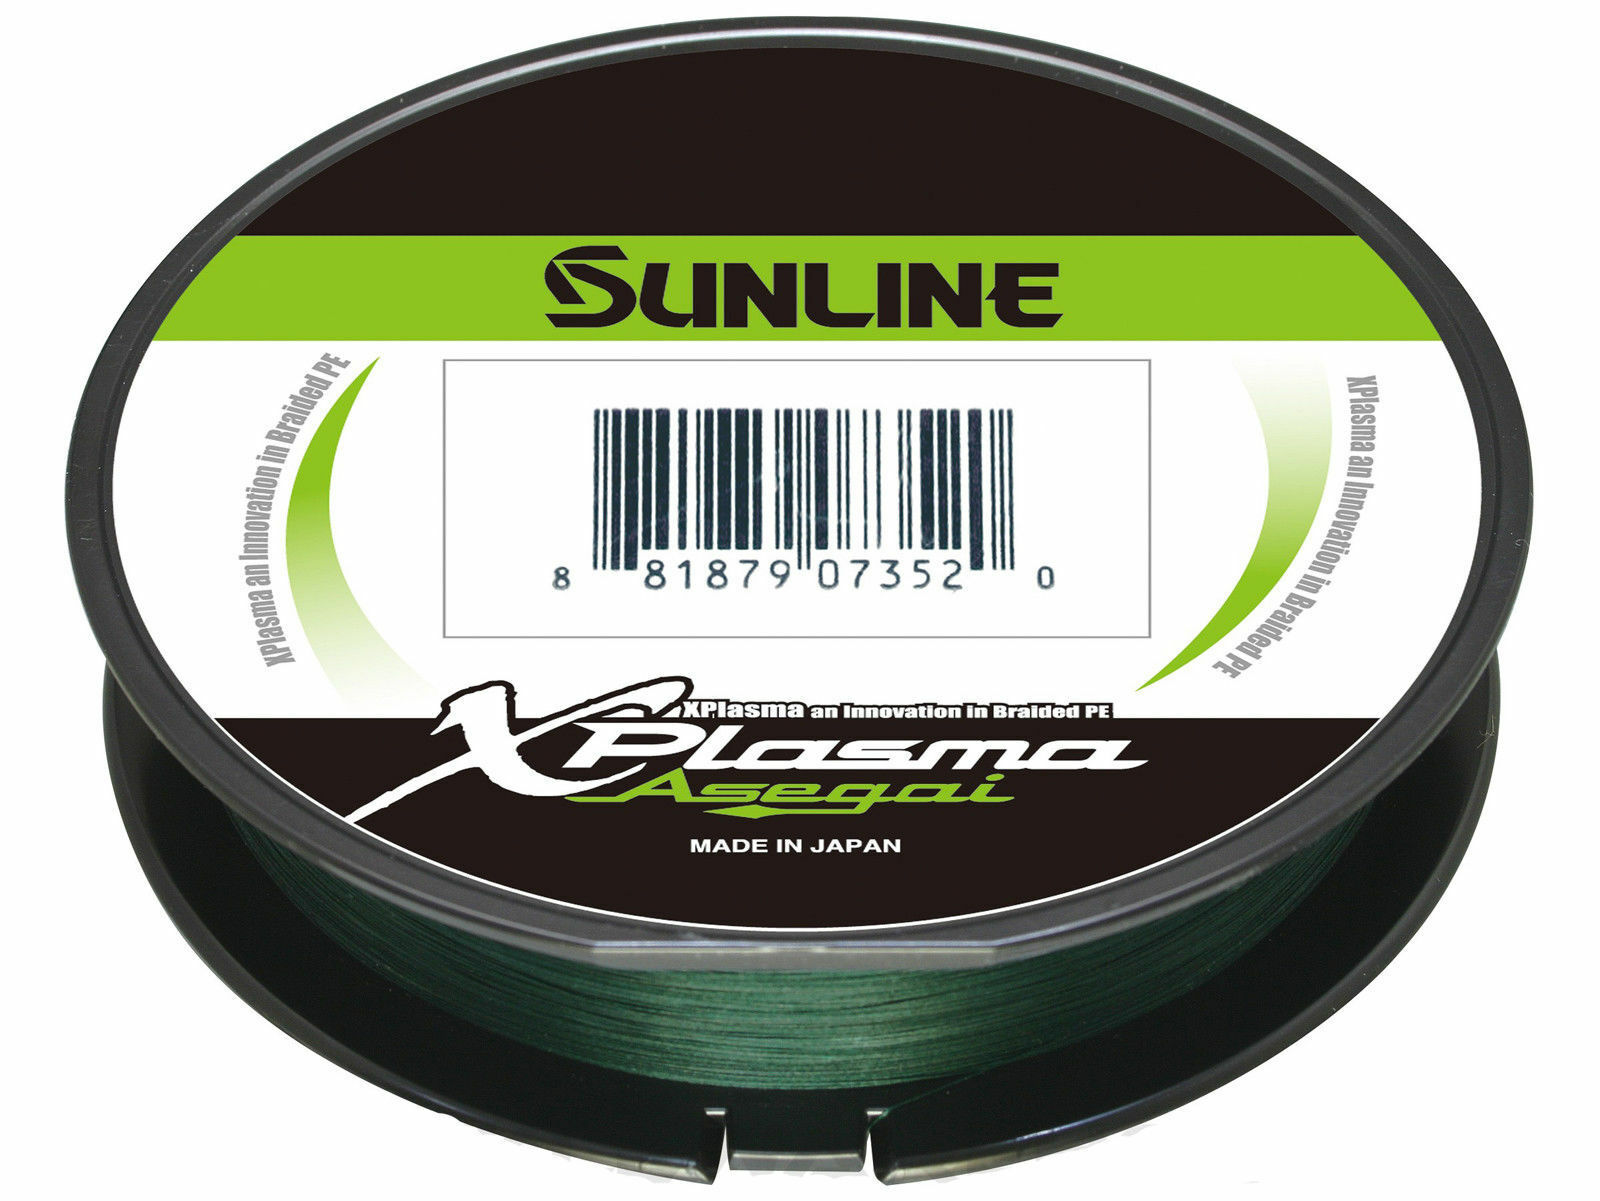 NEW Sunline Xplasma Asegai 12lb Light Green 600yd 63043224